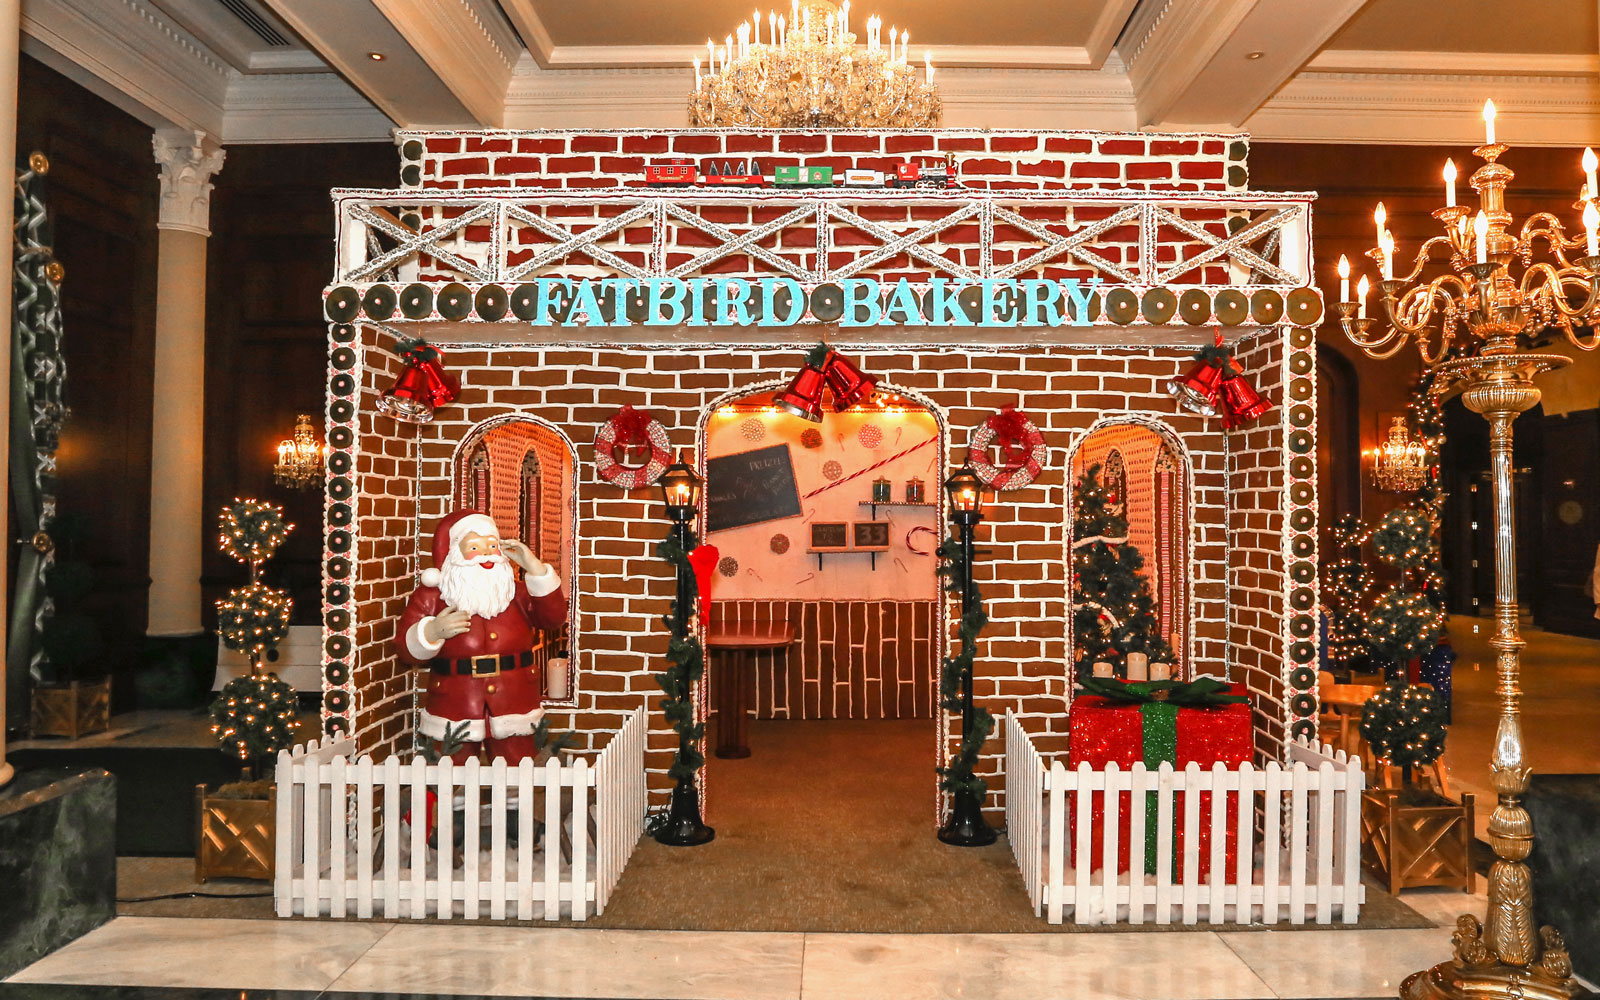 This Life-size Gingerbread House Is Sure to Get You in the Holiday Spirit